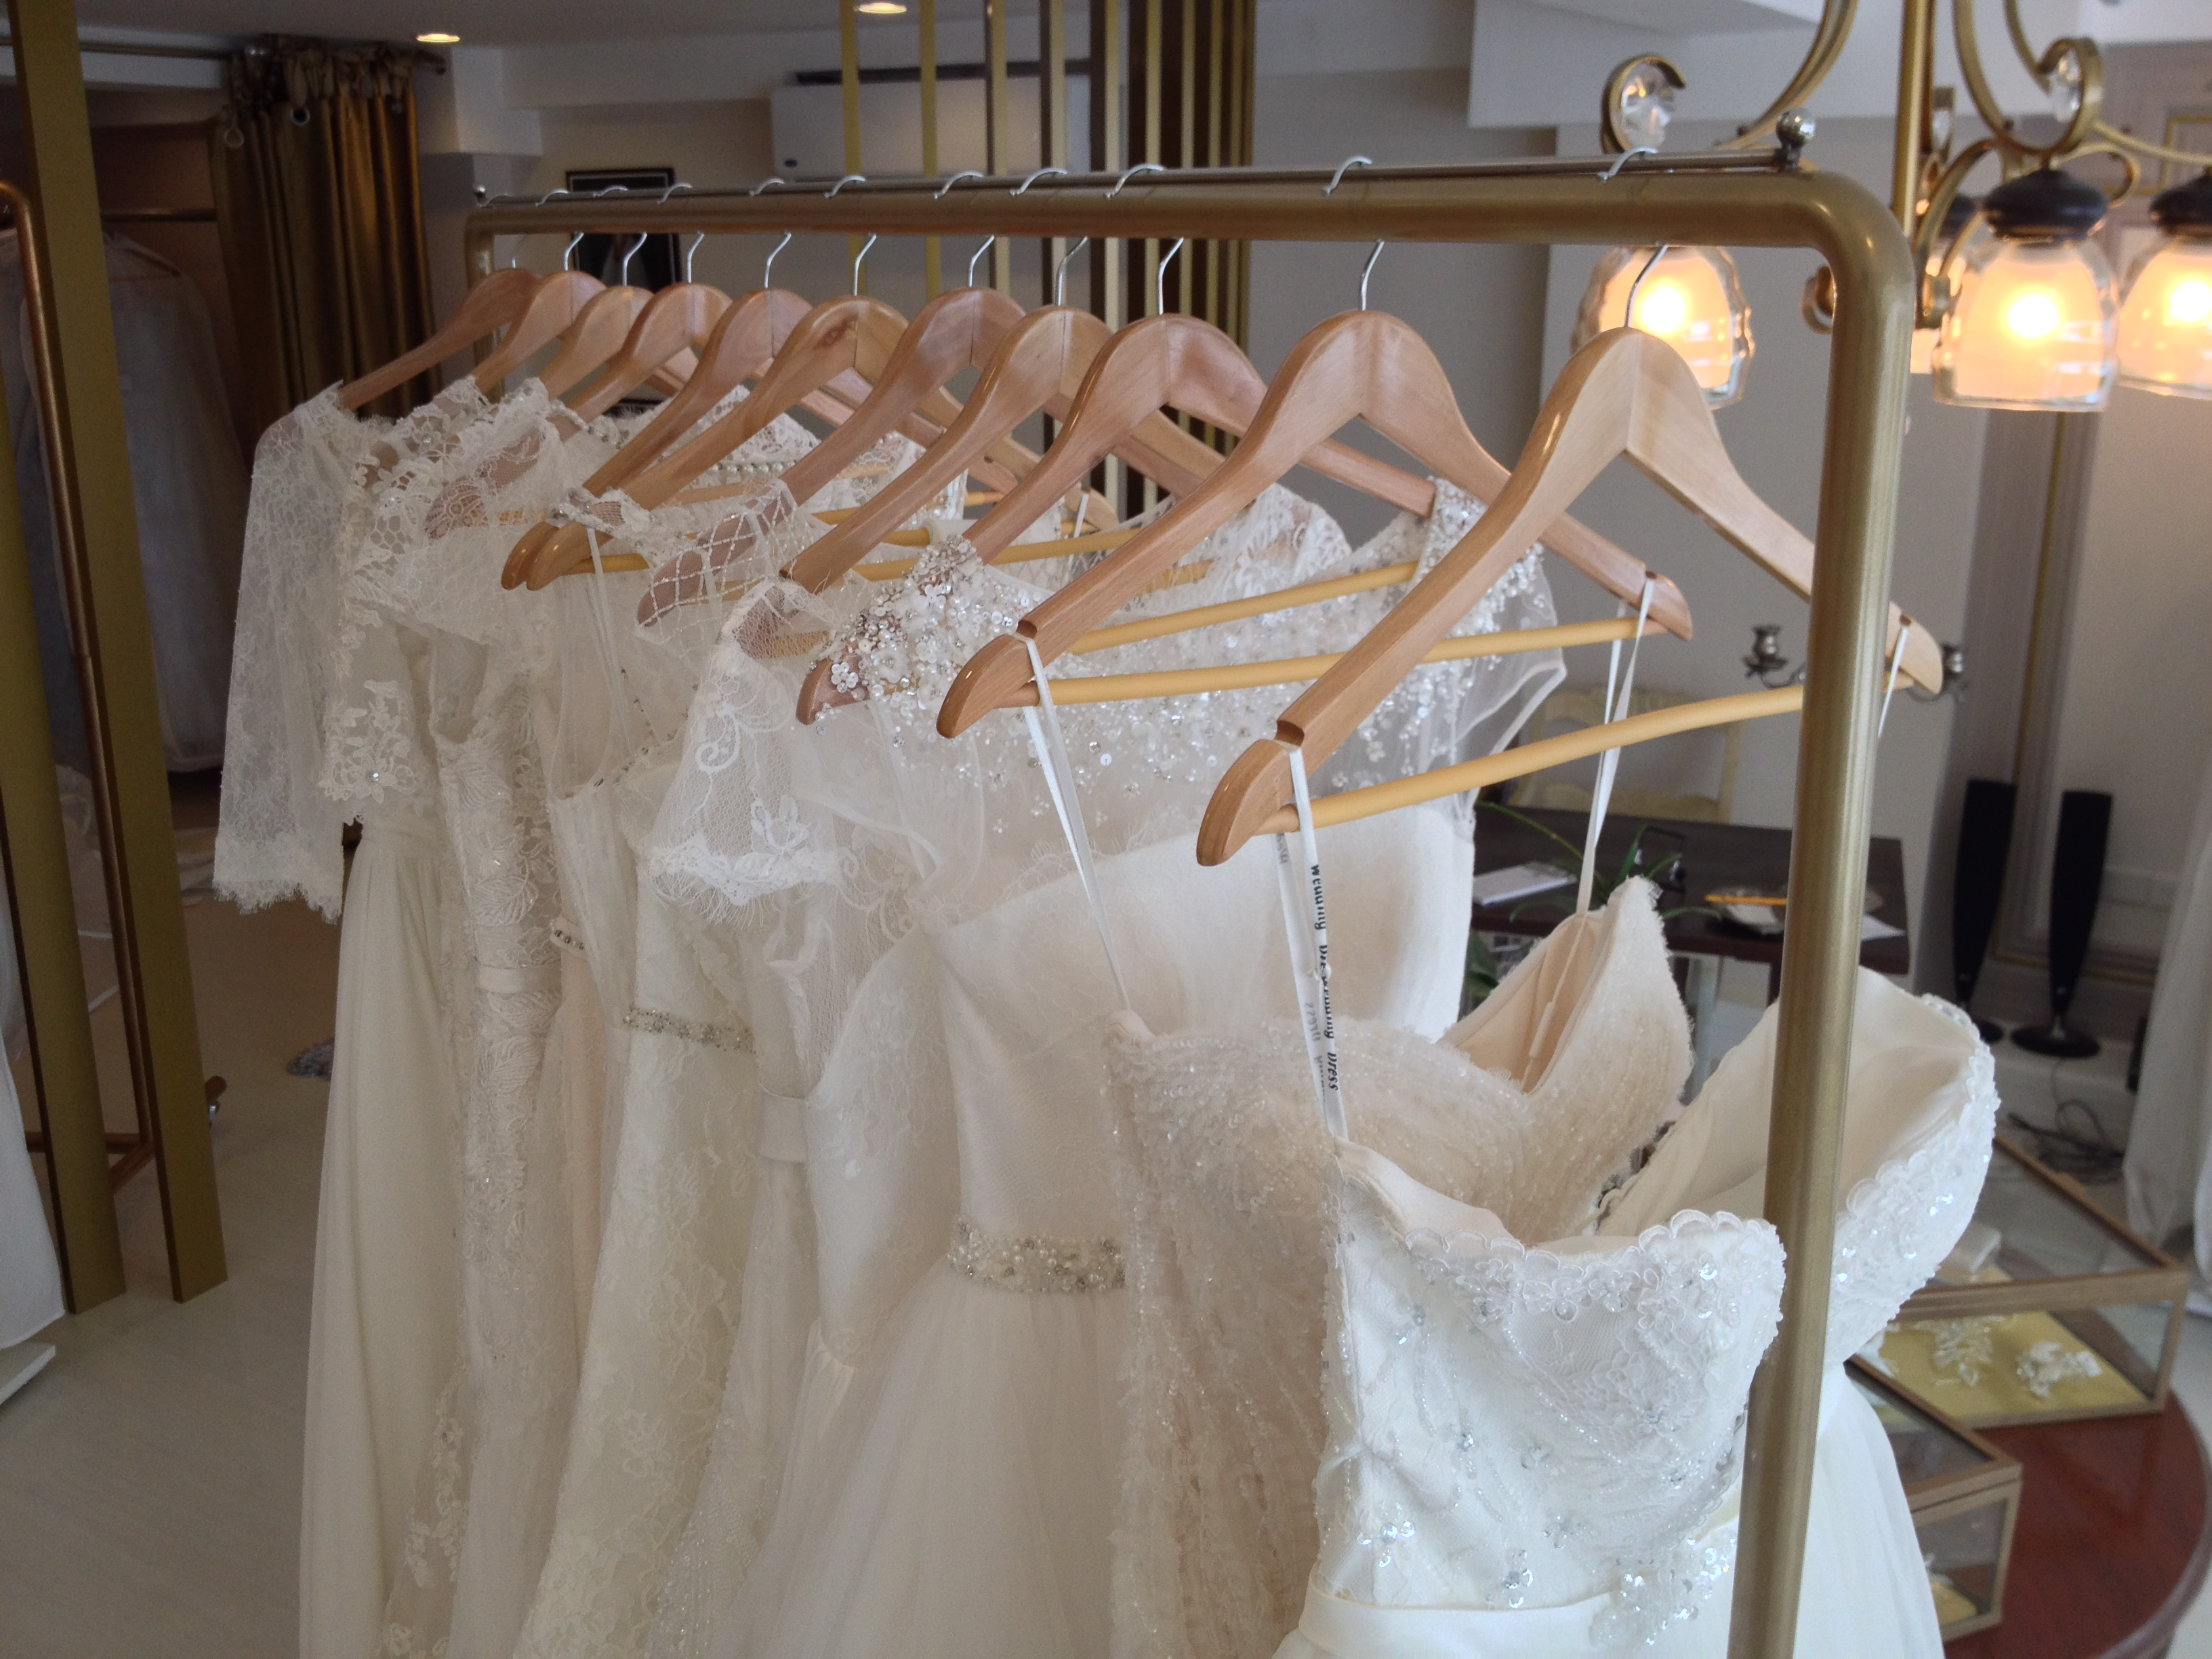 would you rent a wedding gown rent a wedding dress A rack of bridal gowns available for rent at The Bridal Room